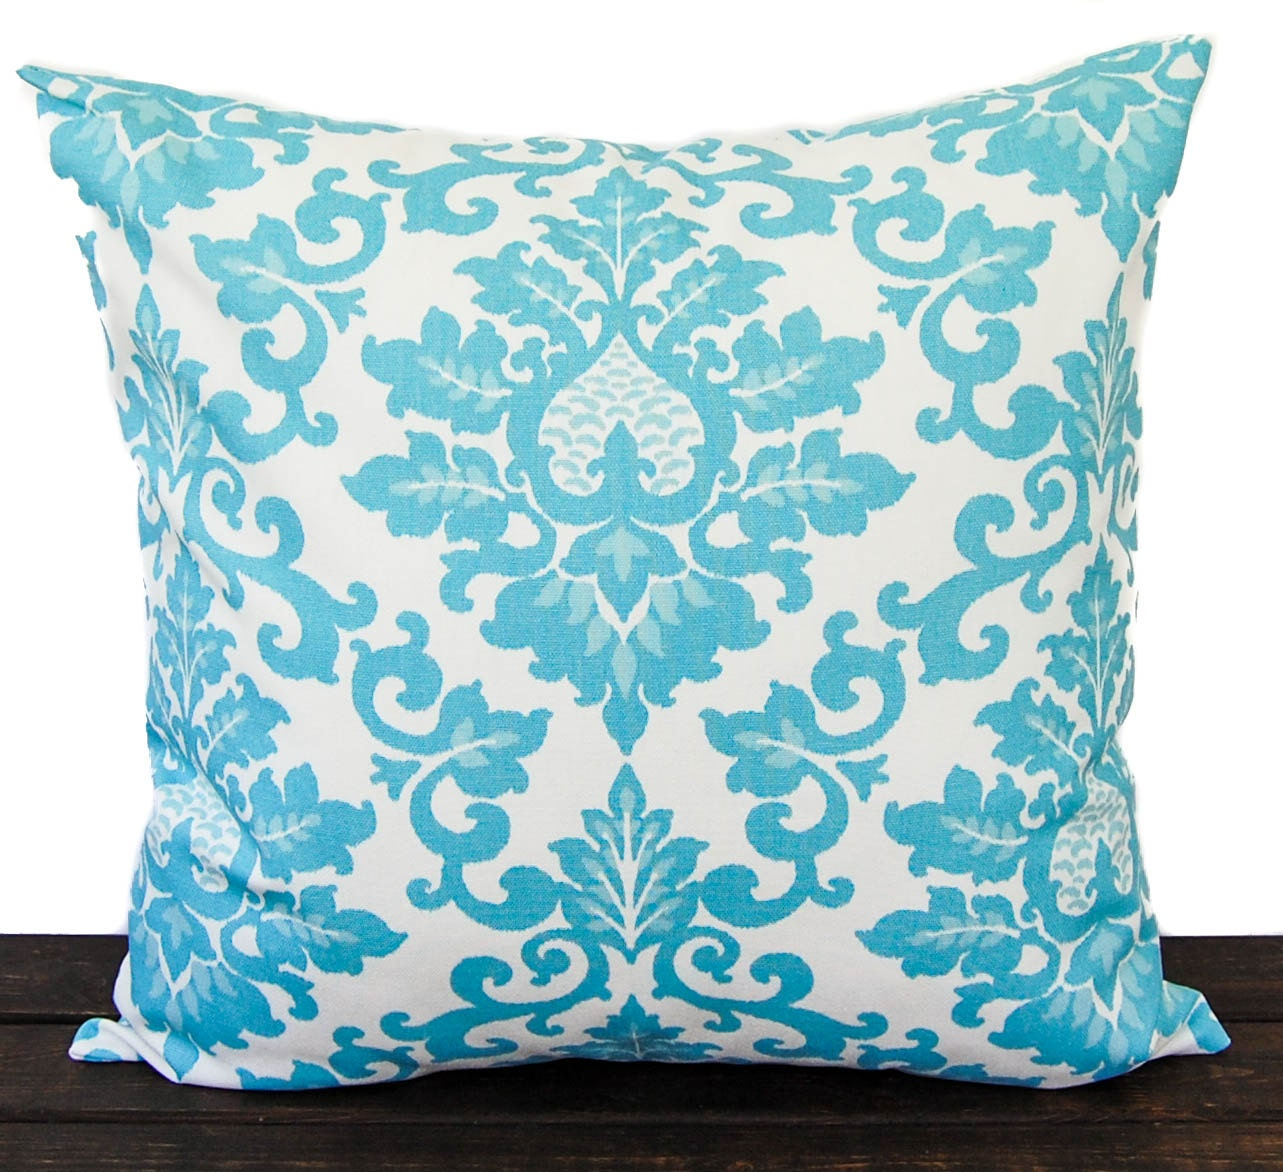 Throw pillow cover Coastal Blue and white cushion cover